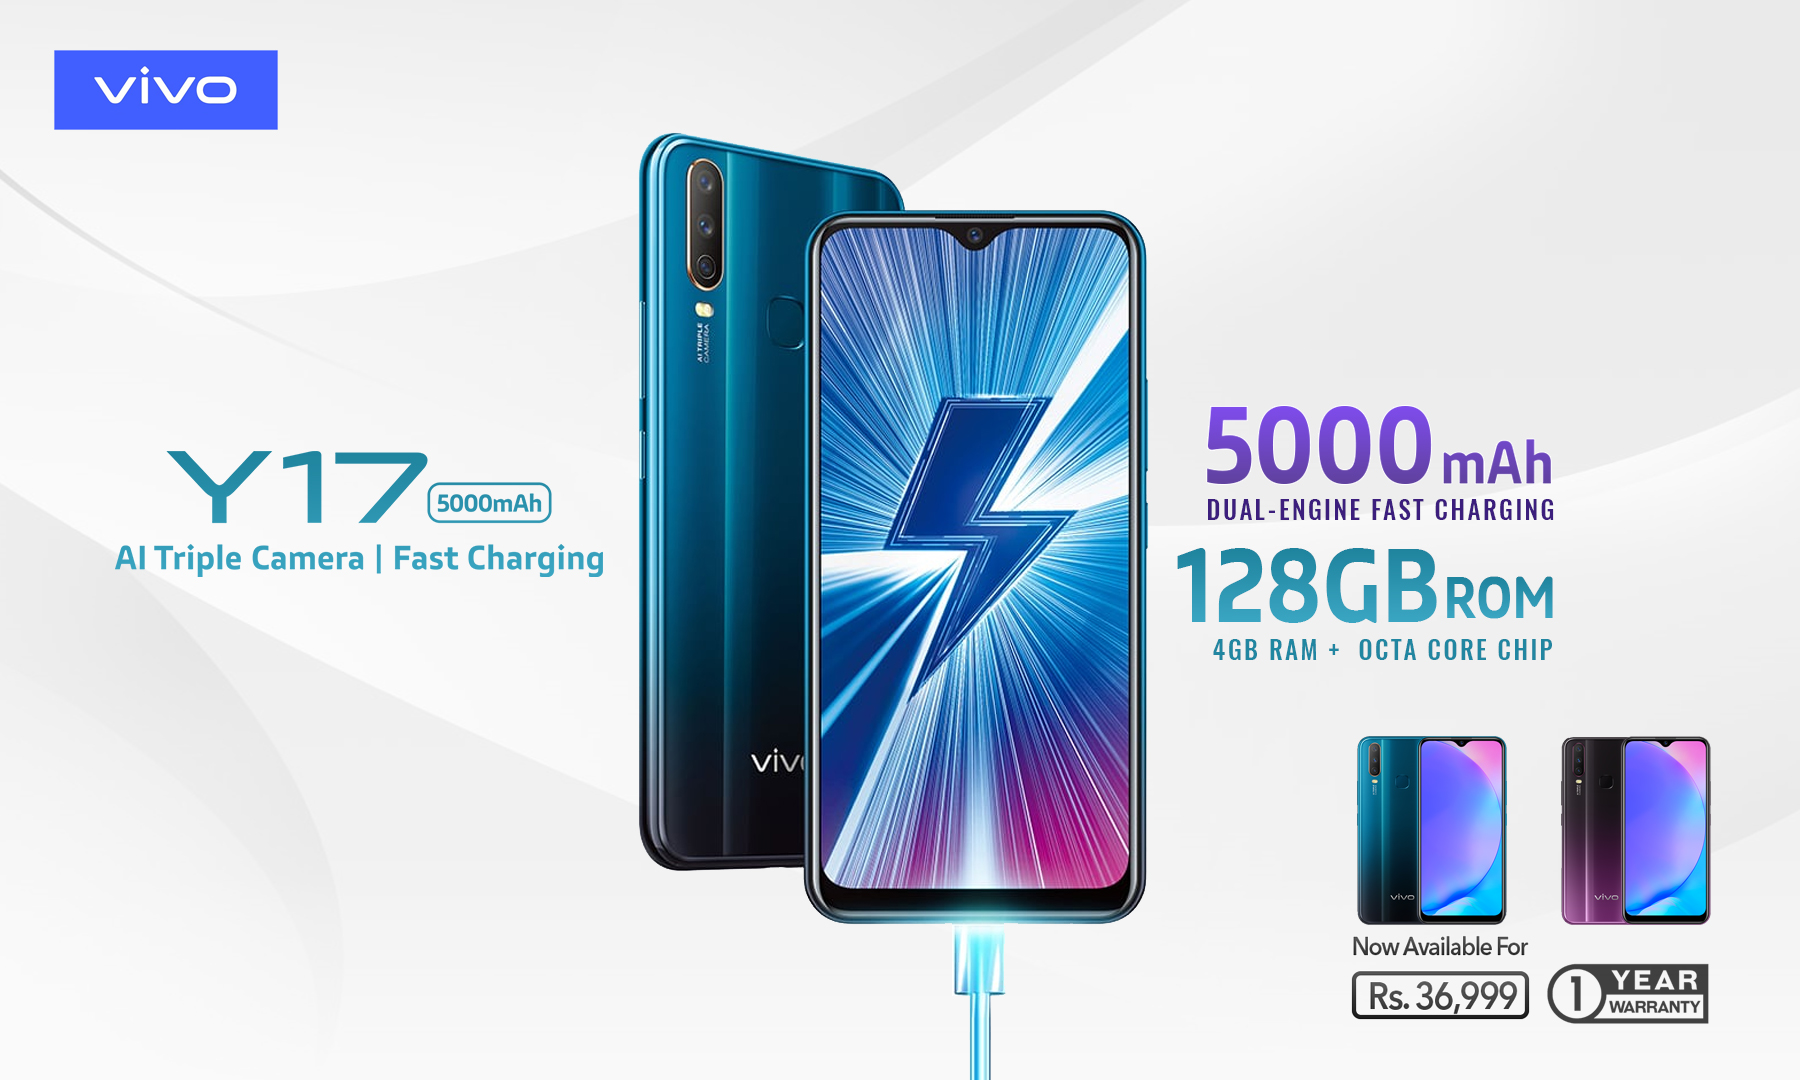 Vivo Y17 5000mAh Battery Dual-Engine Fast Charging